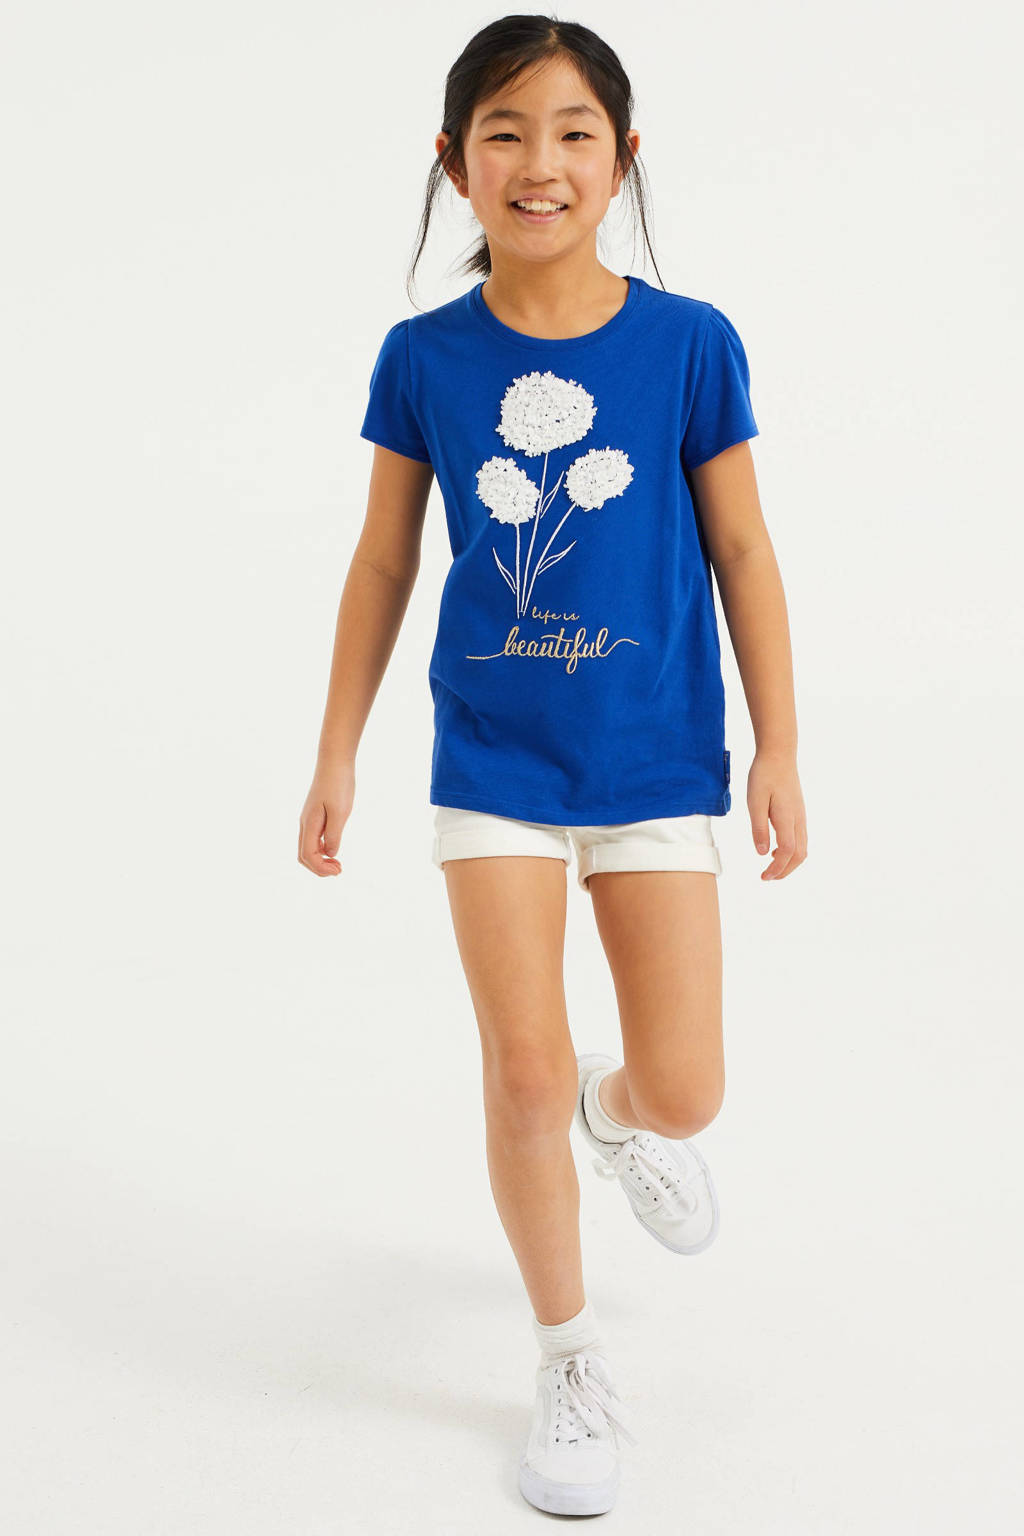 WE Fashion T-shirt met printopdruk en borduursels blauw/wit, Blauw/wit